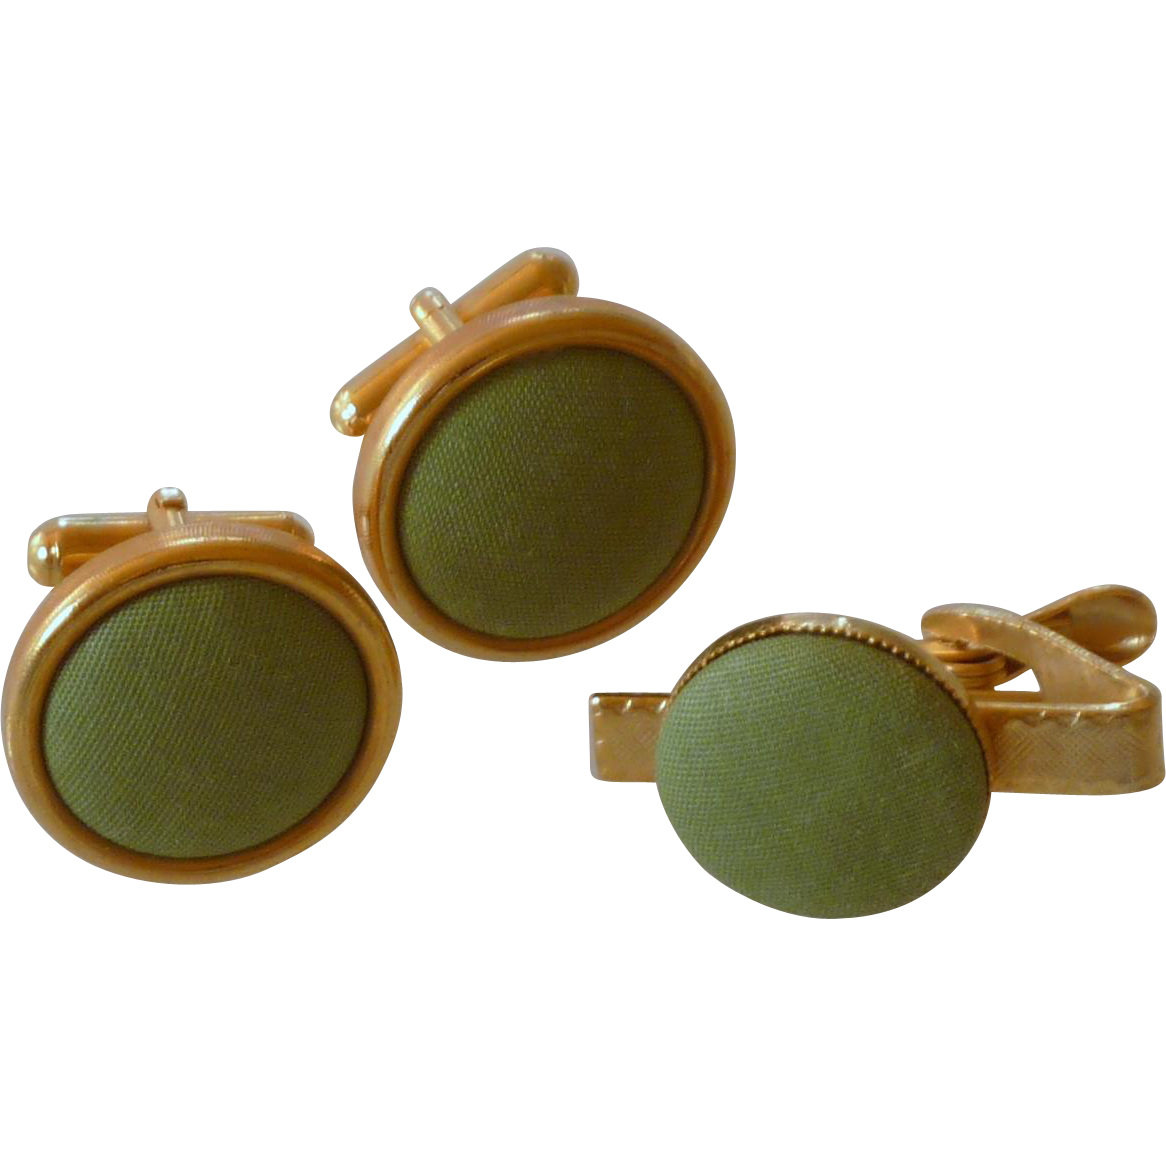 Apple Green Cloth Cufflinks Cuff Links & Tie Clasp